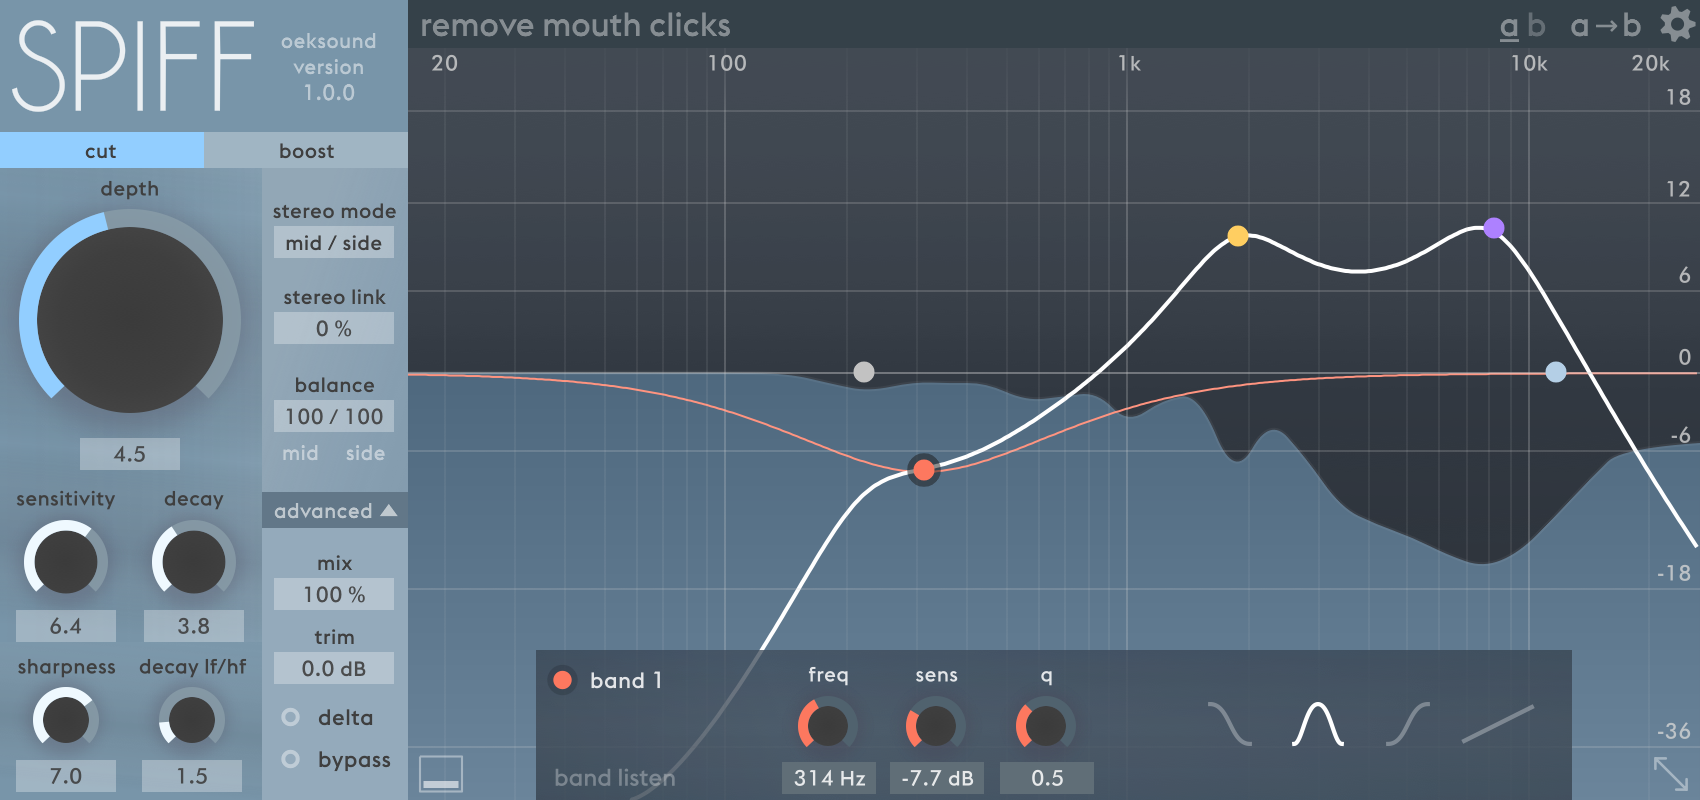 best transient designer shaper plug-ins to buy mix with Spiff - oeksound.png